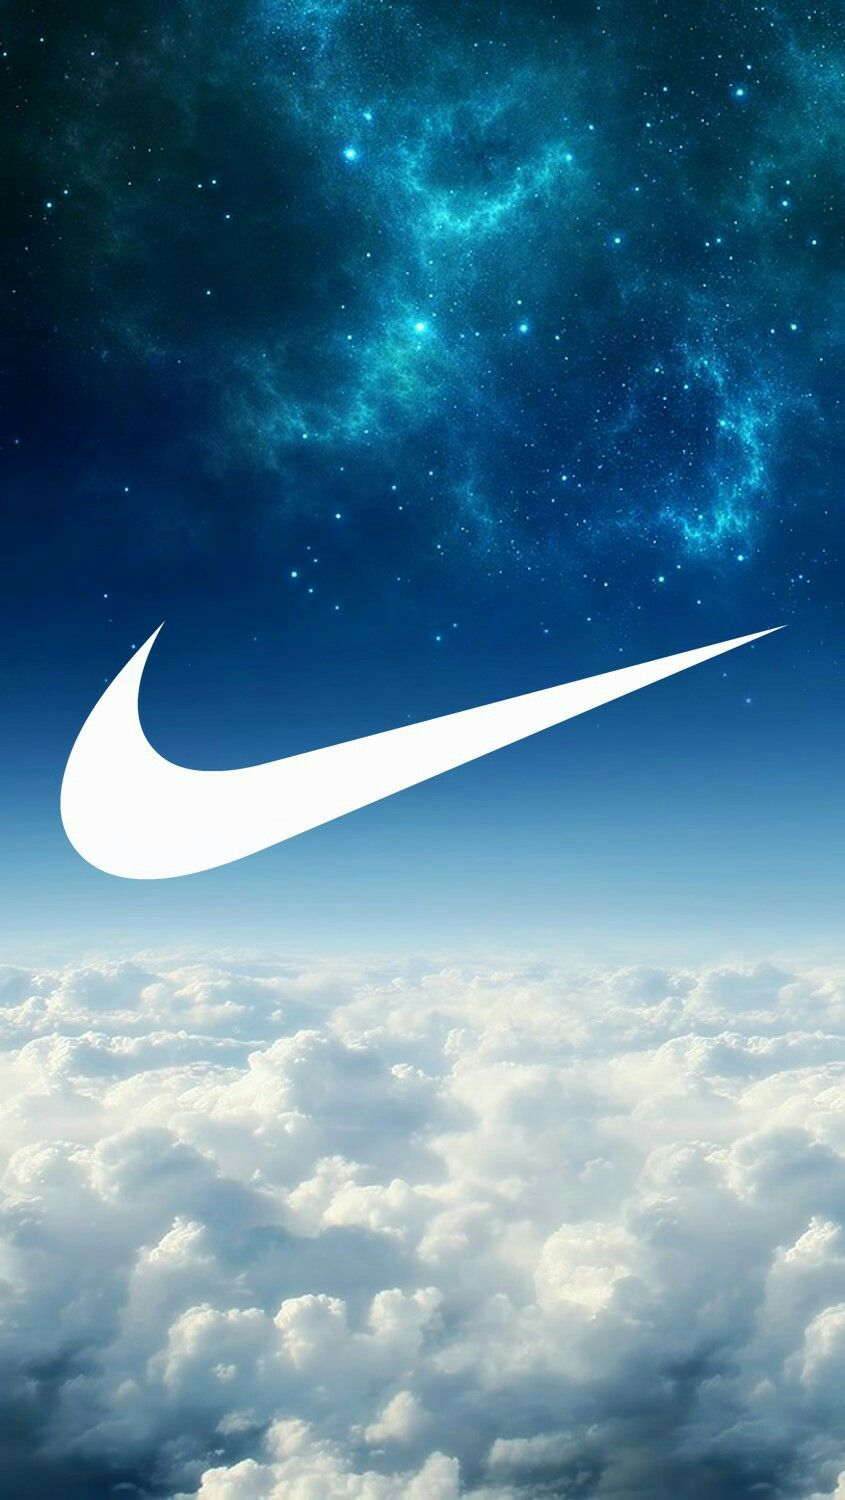 Nike Backgrounds For Phones : backgrounds, phones, Hypebeast, #wallpaper, #allezlesbleus, #iphone, #android, #background, #오웬, 샌디, Wallpaper,, Wallpaper, Iphone,, Adidas, Wallpapers